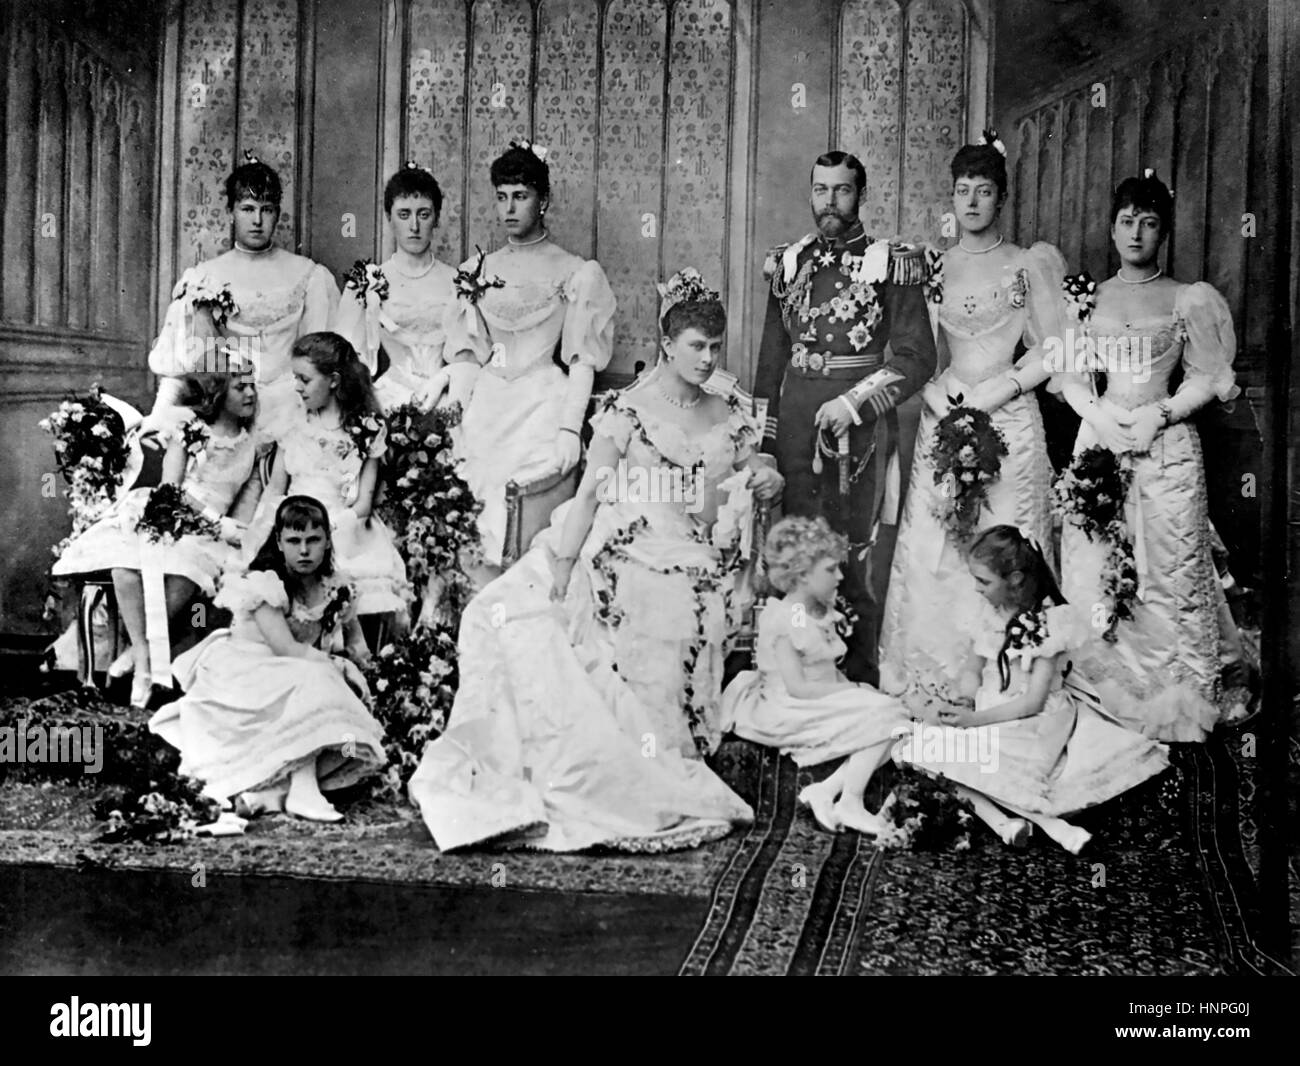 GEORGE V as Duke of York with his new bride Princess Mary of Teck in July 1893 - Stock Image